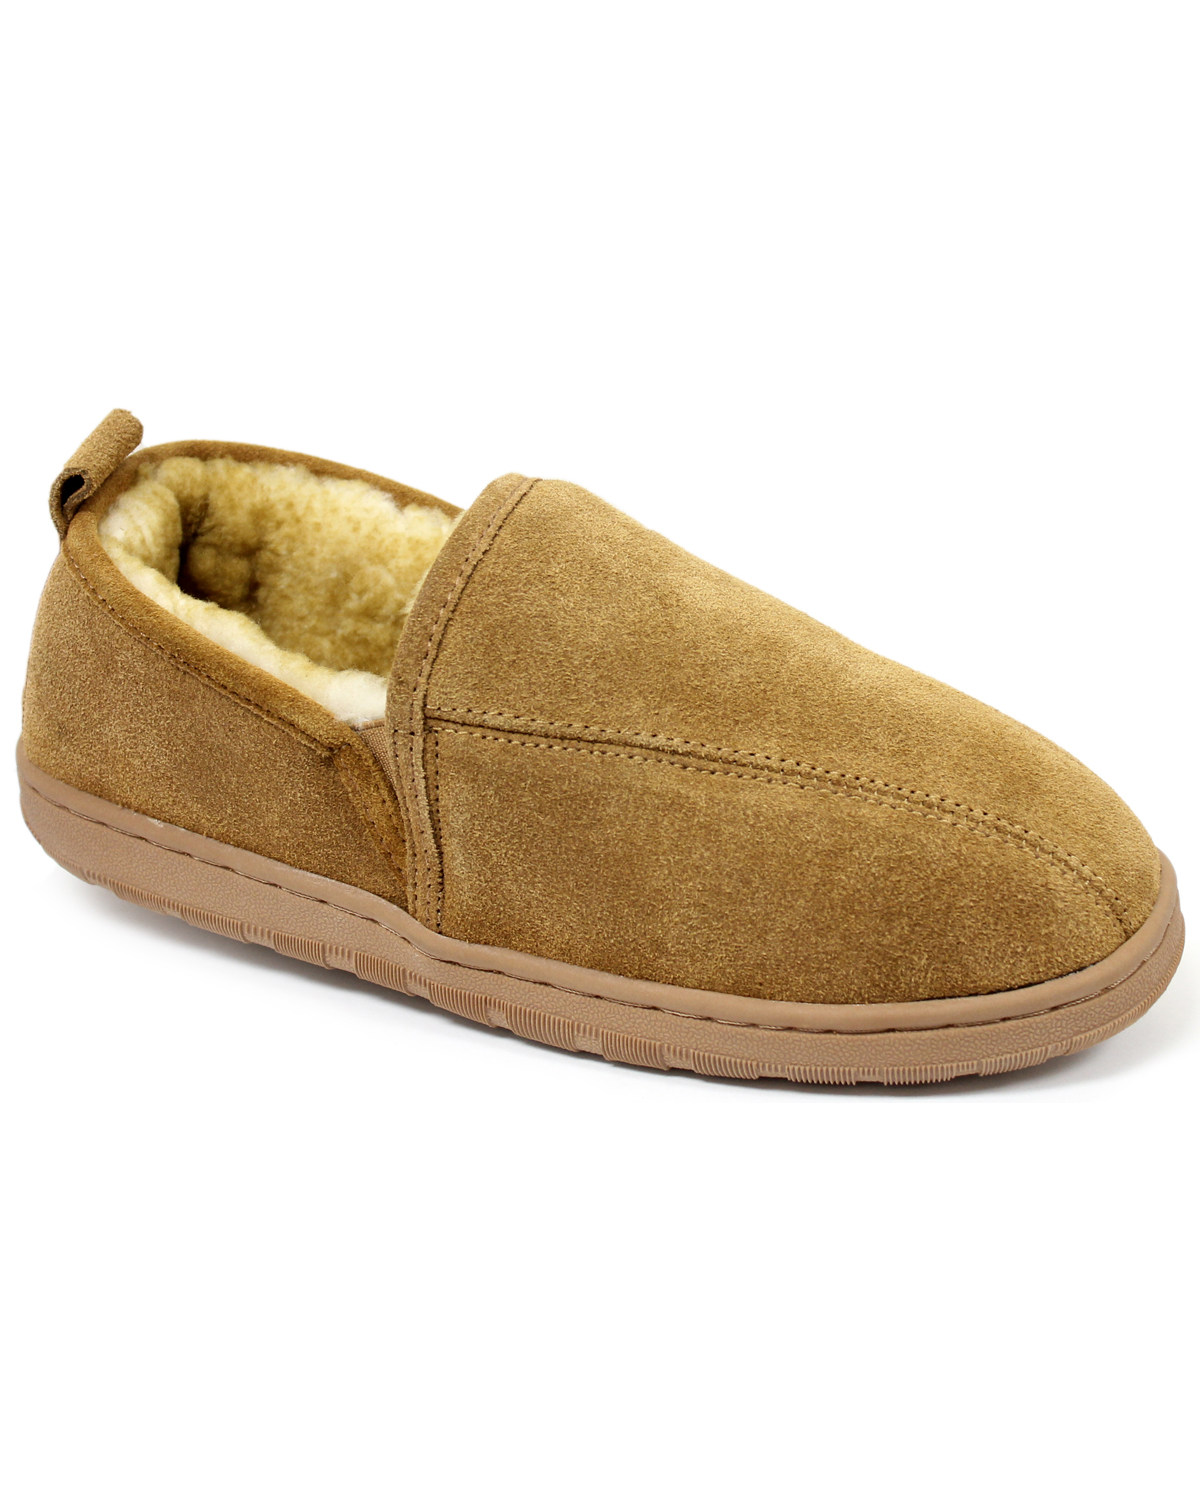 691d28d3a657a4 Lamo Men s Romeo Slippers